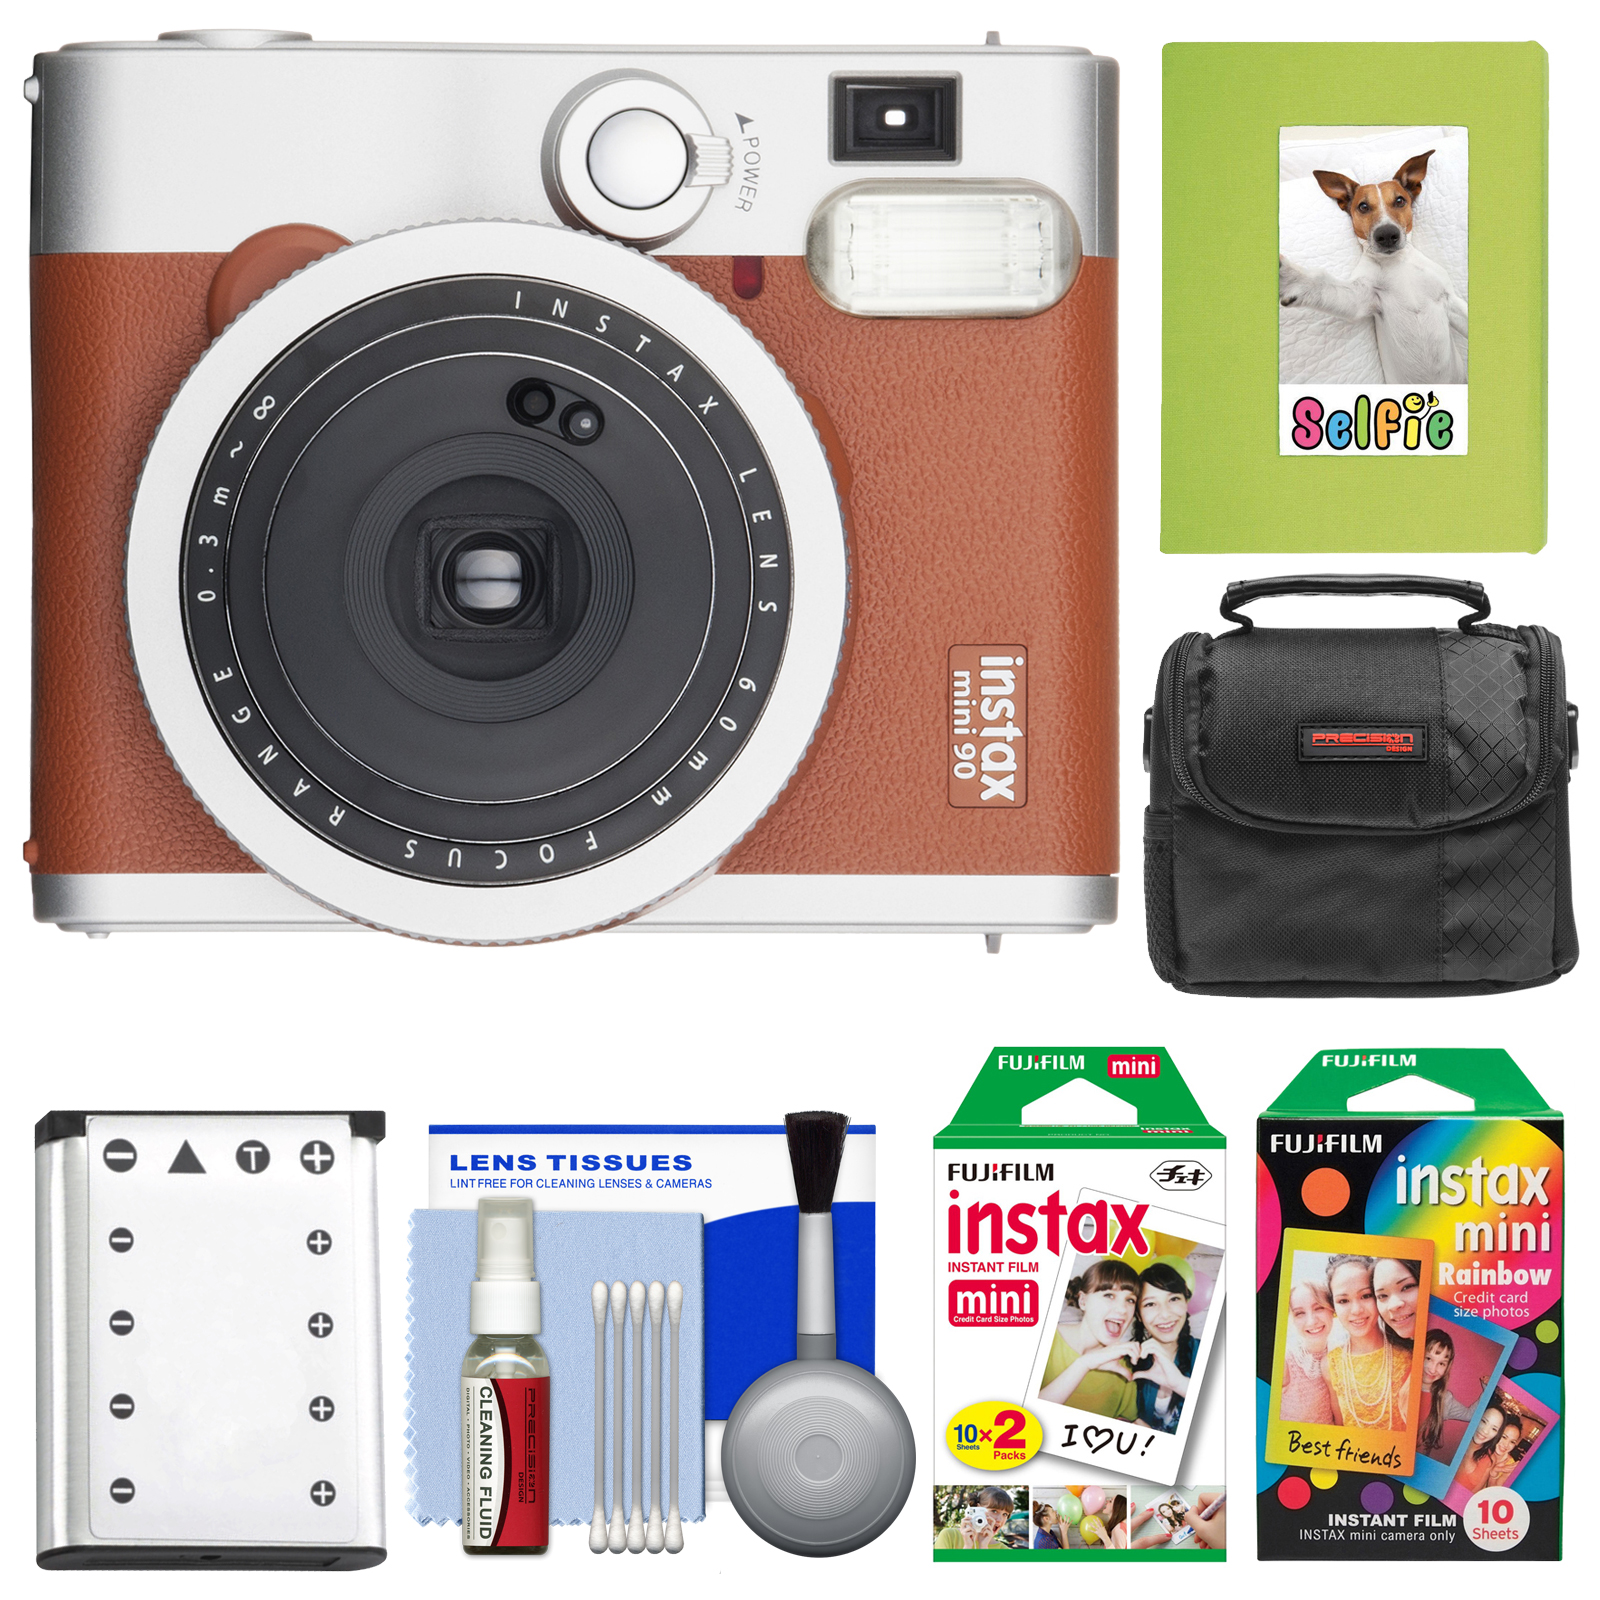 FujiFilm Instax Mini 90 Neo Classic Instant Film Camera (Brown) with 20 Twin Prints & 10 Rainbow Prints + Case... by Fujifilm